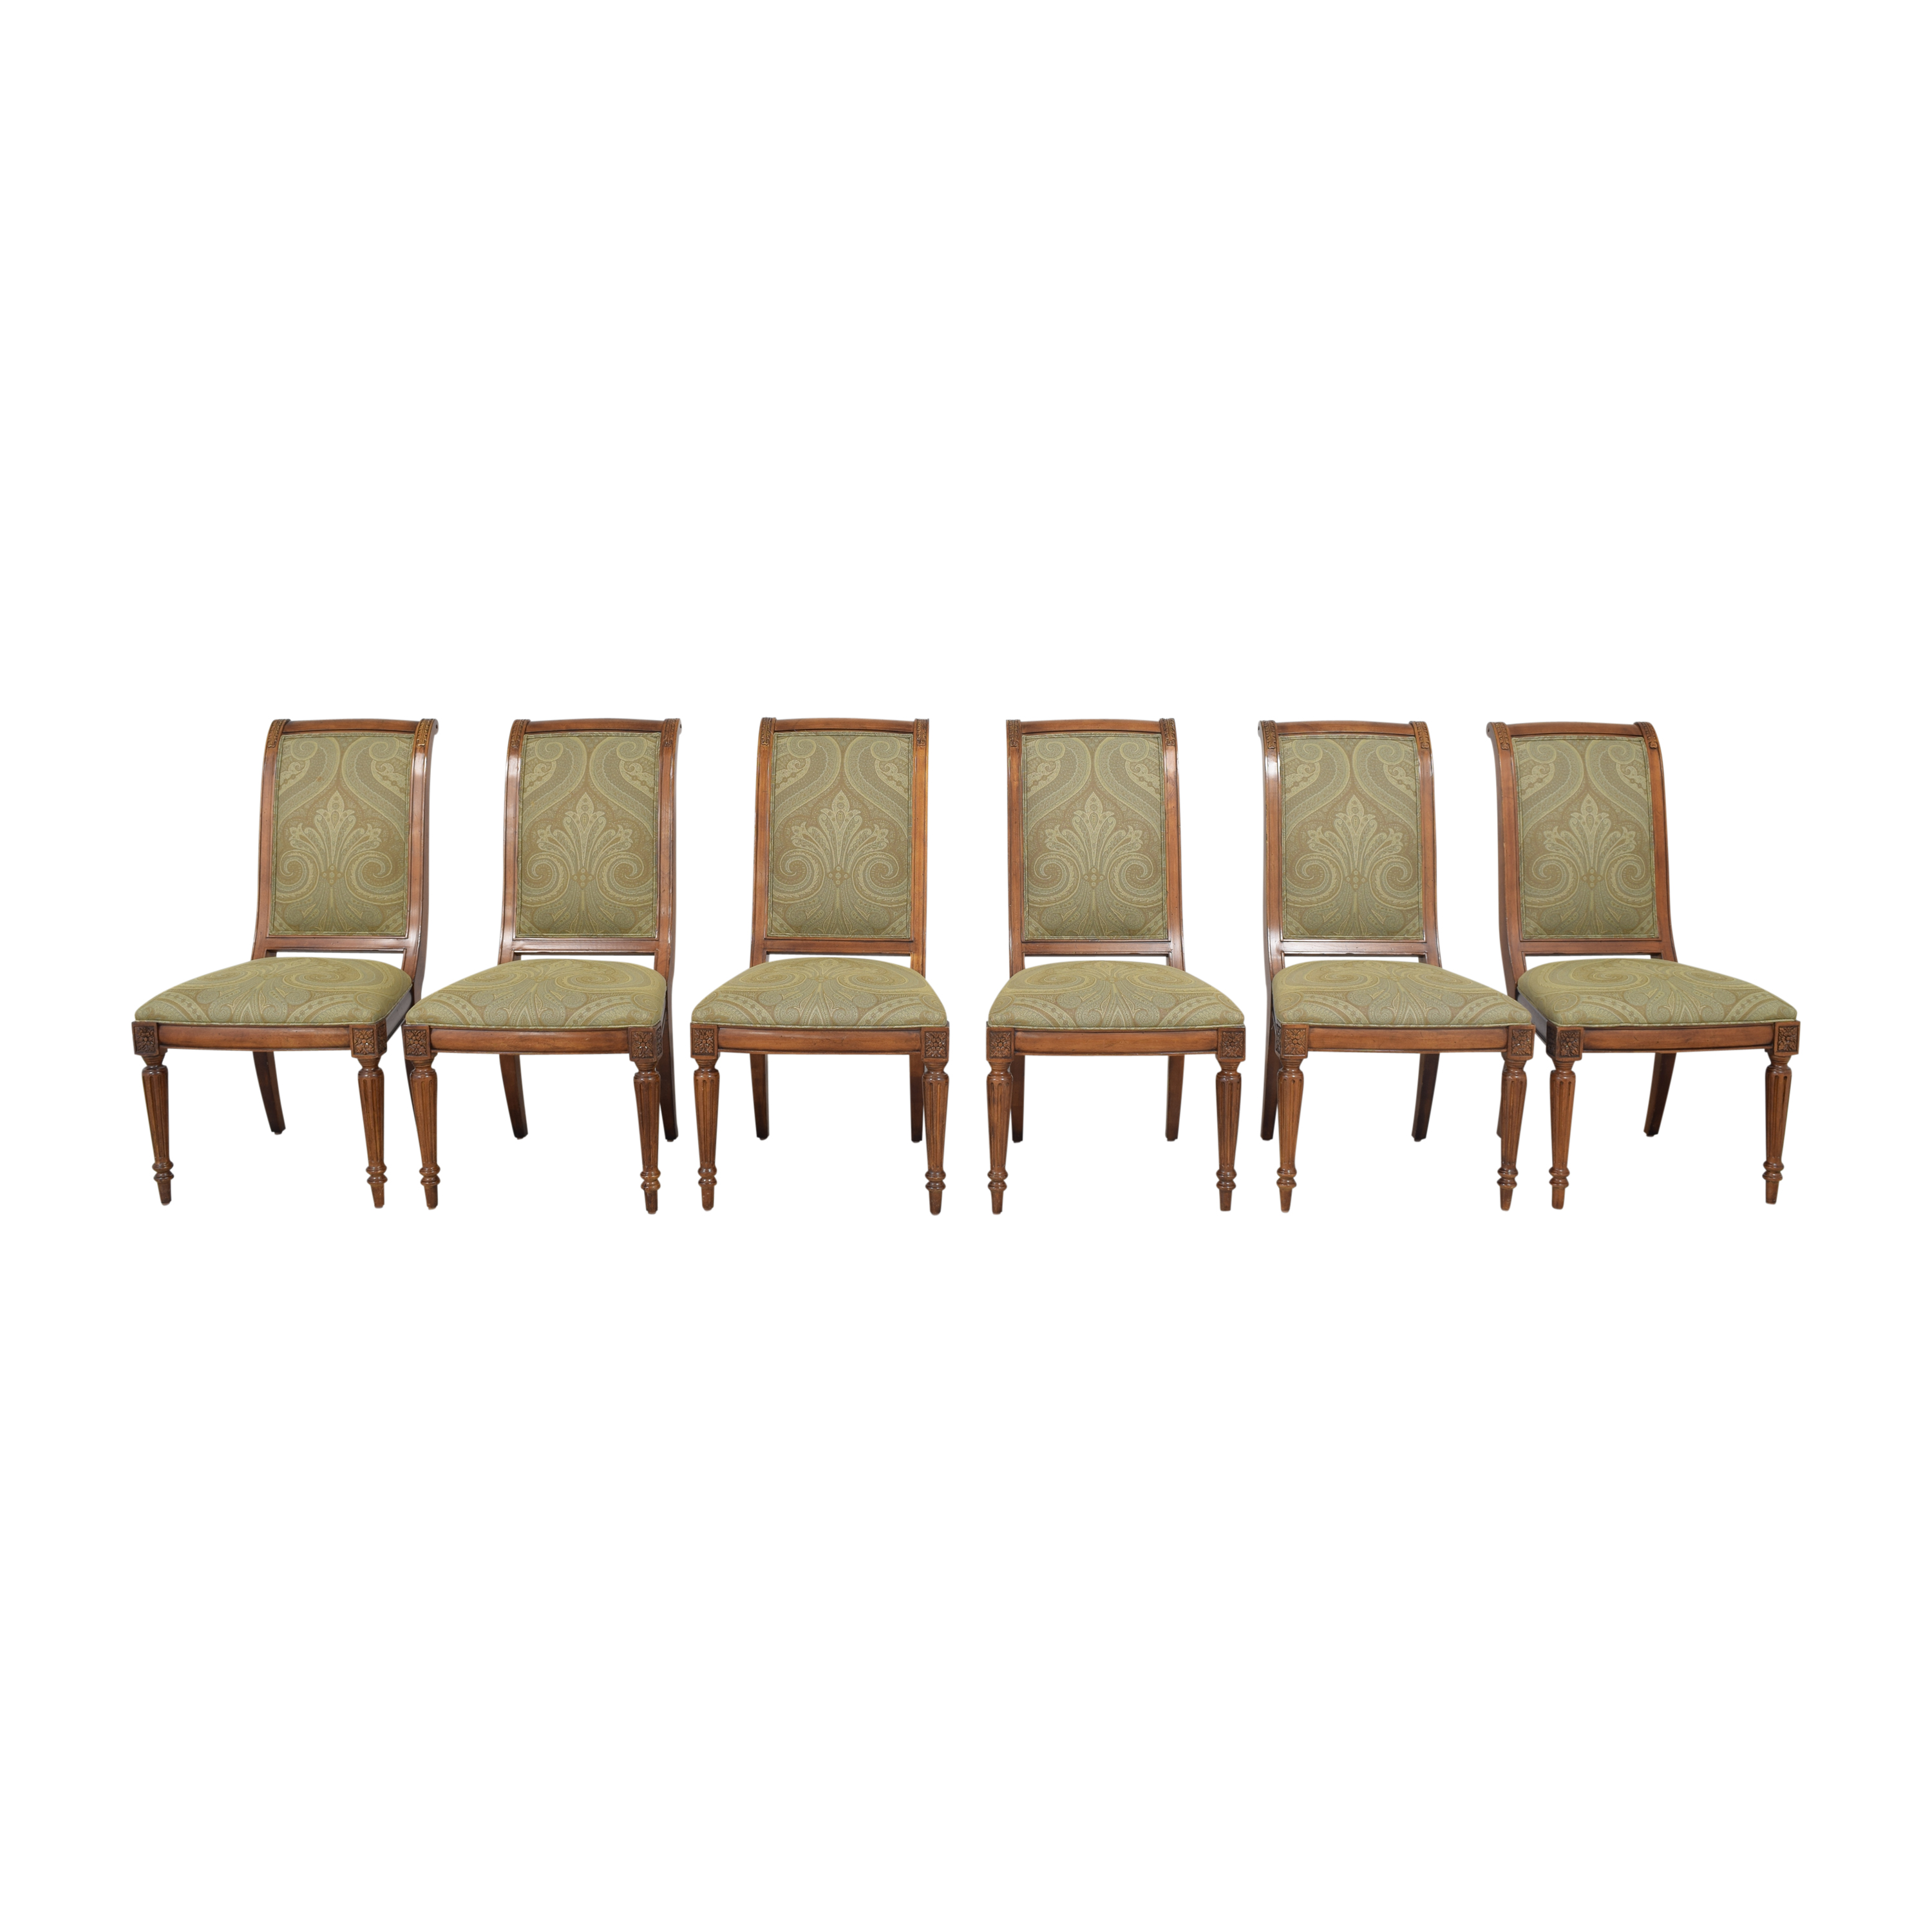 Ethan Allen Ethan Allen Townhouse Addison Dining Side Chairs